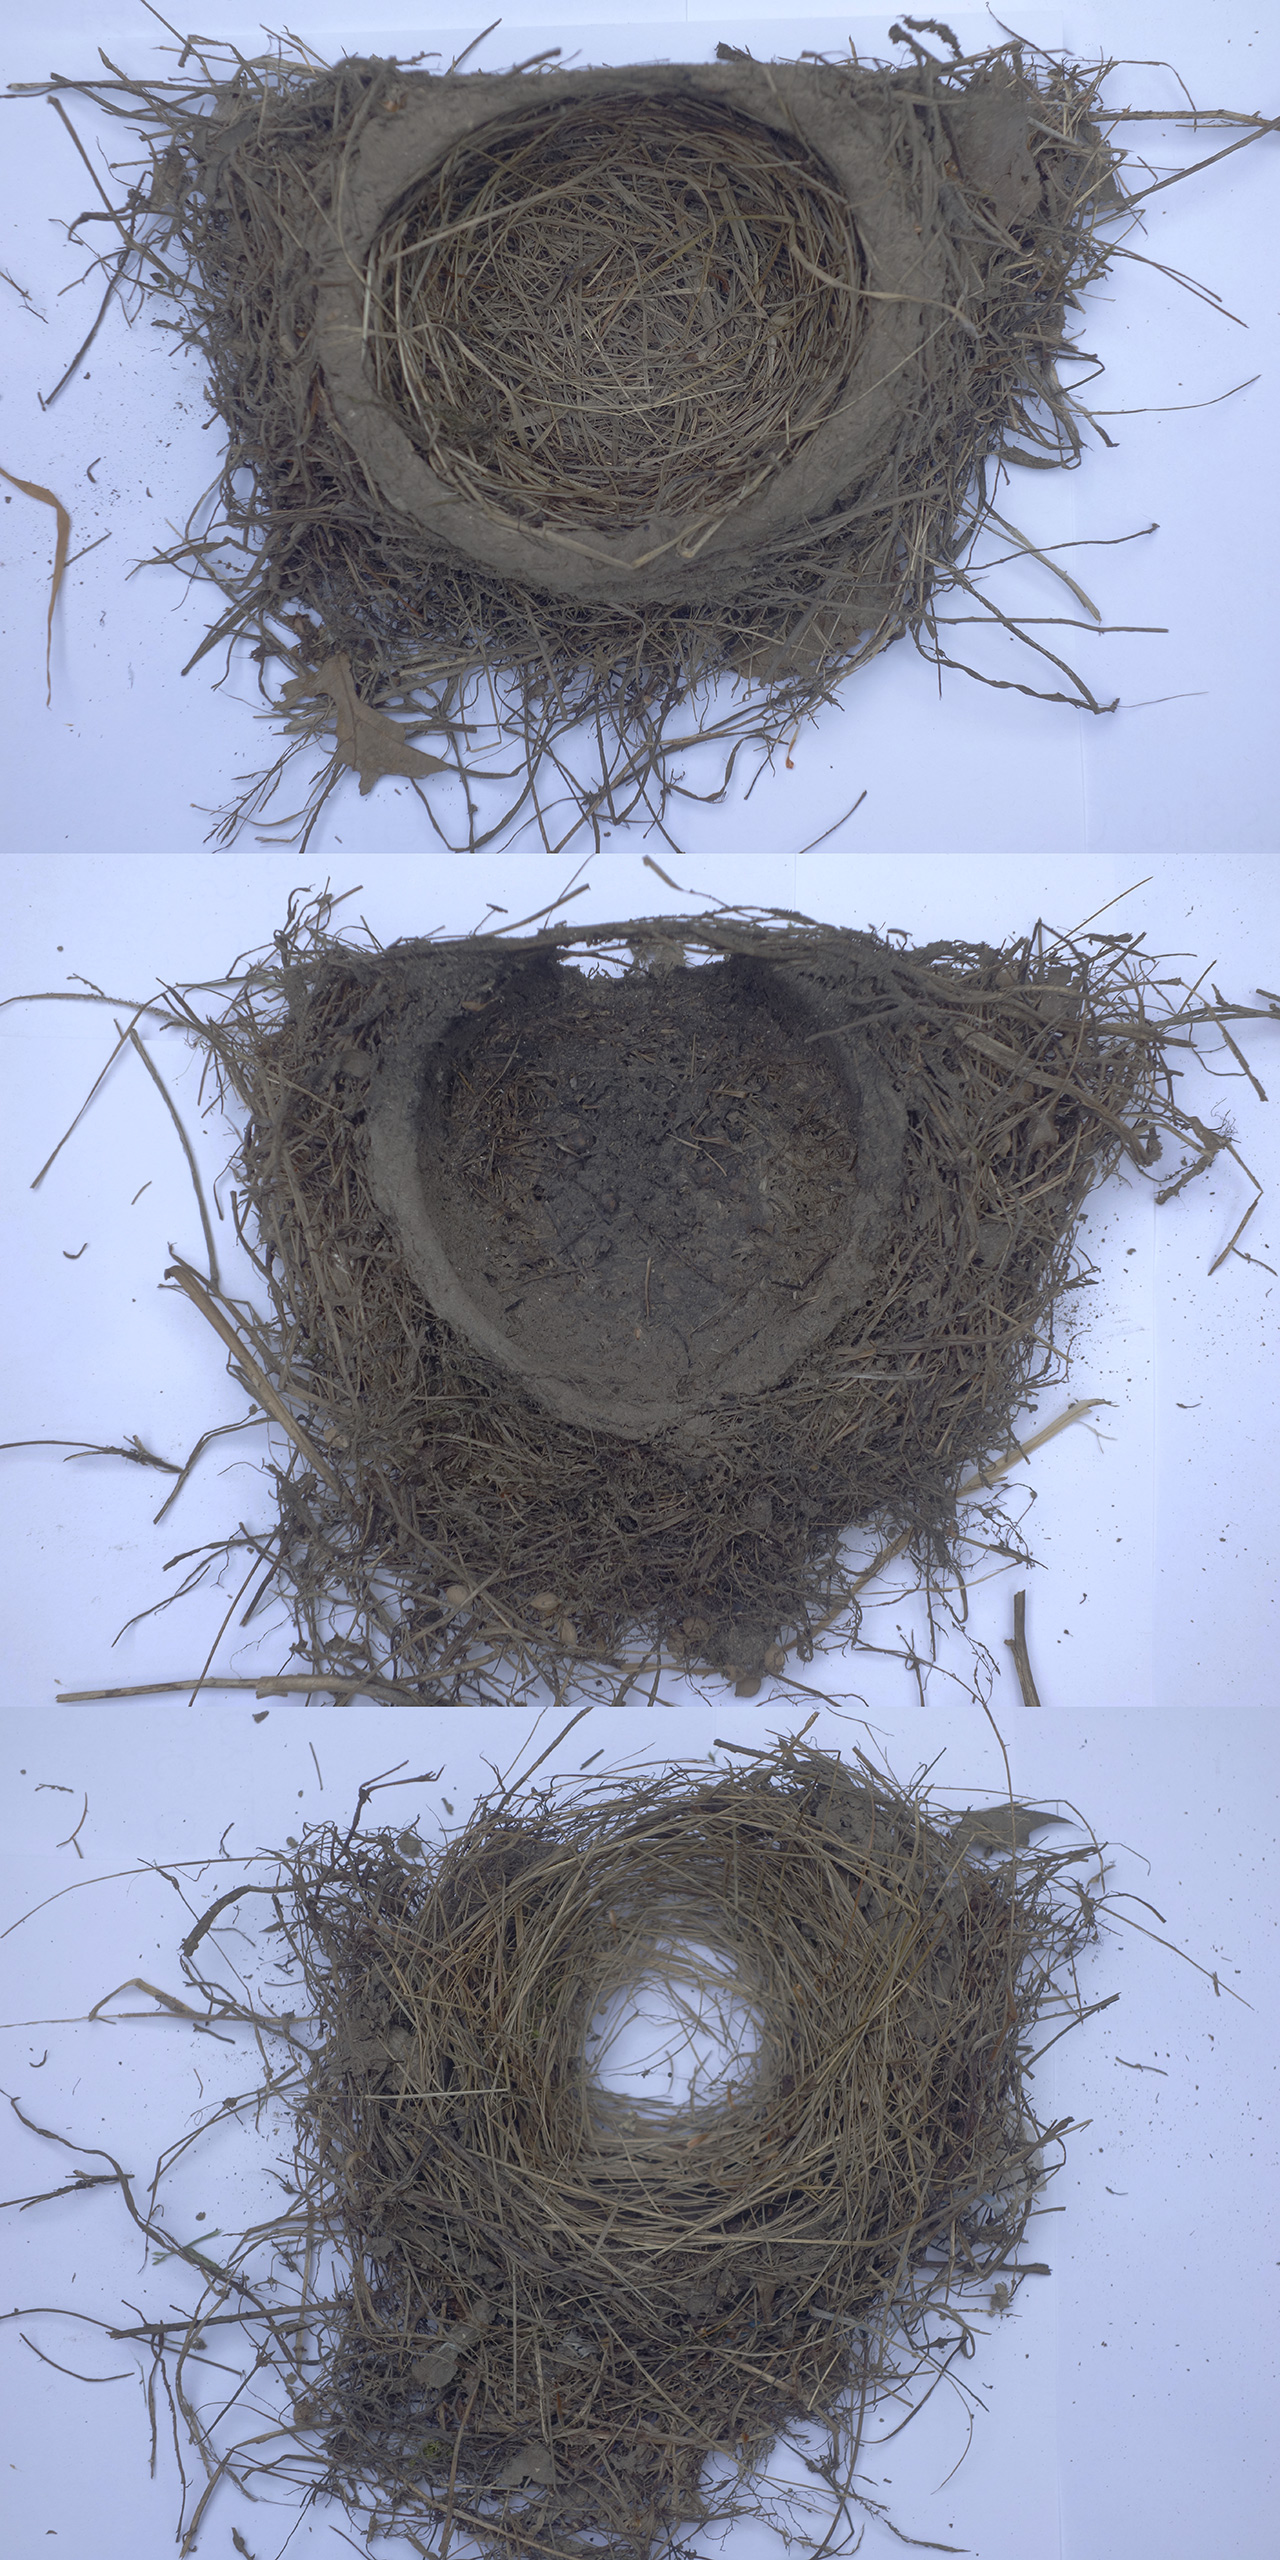 Three robin nests.